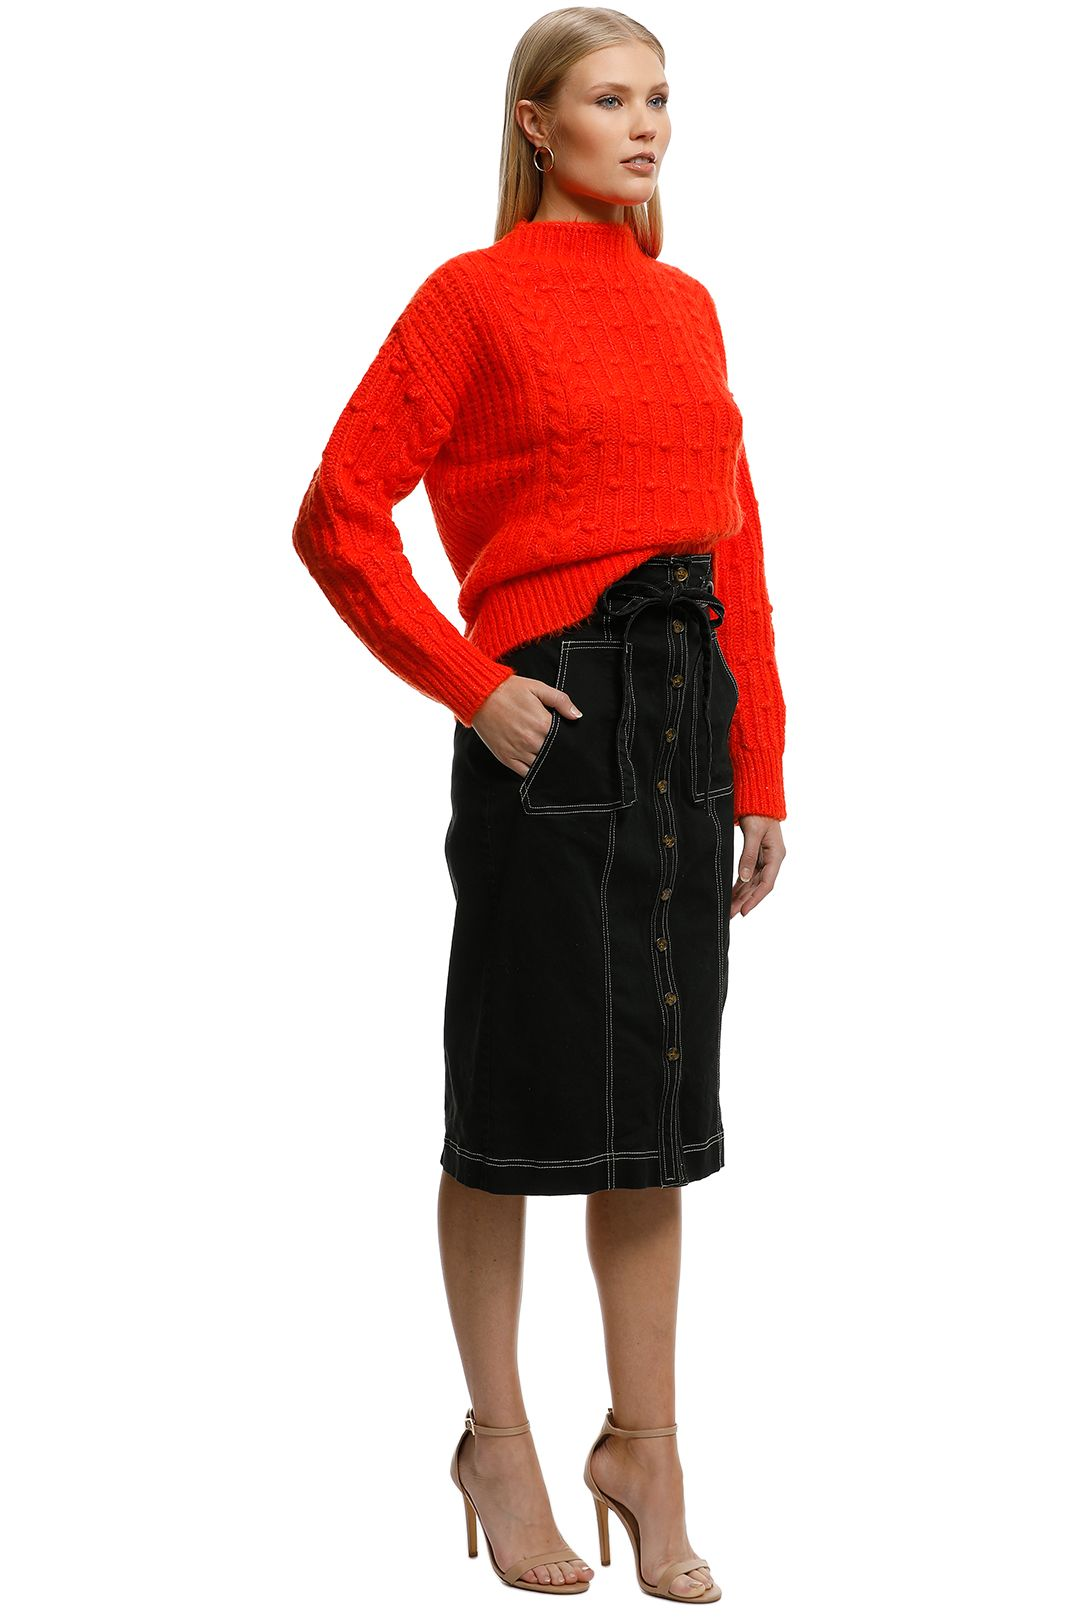 MNG - Contrasting Knit Sweater - Orange - Side